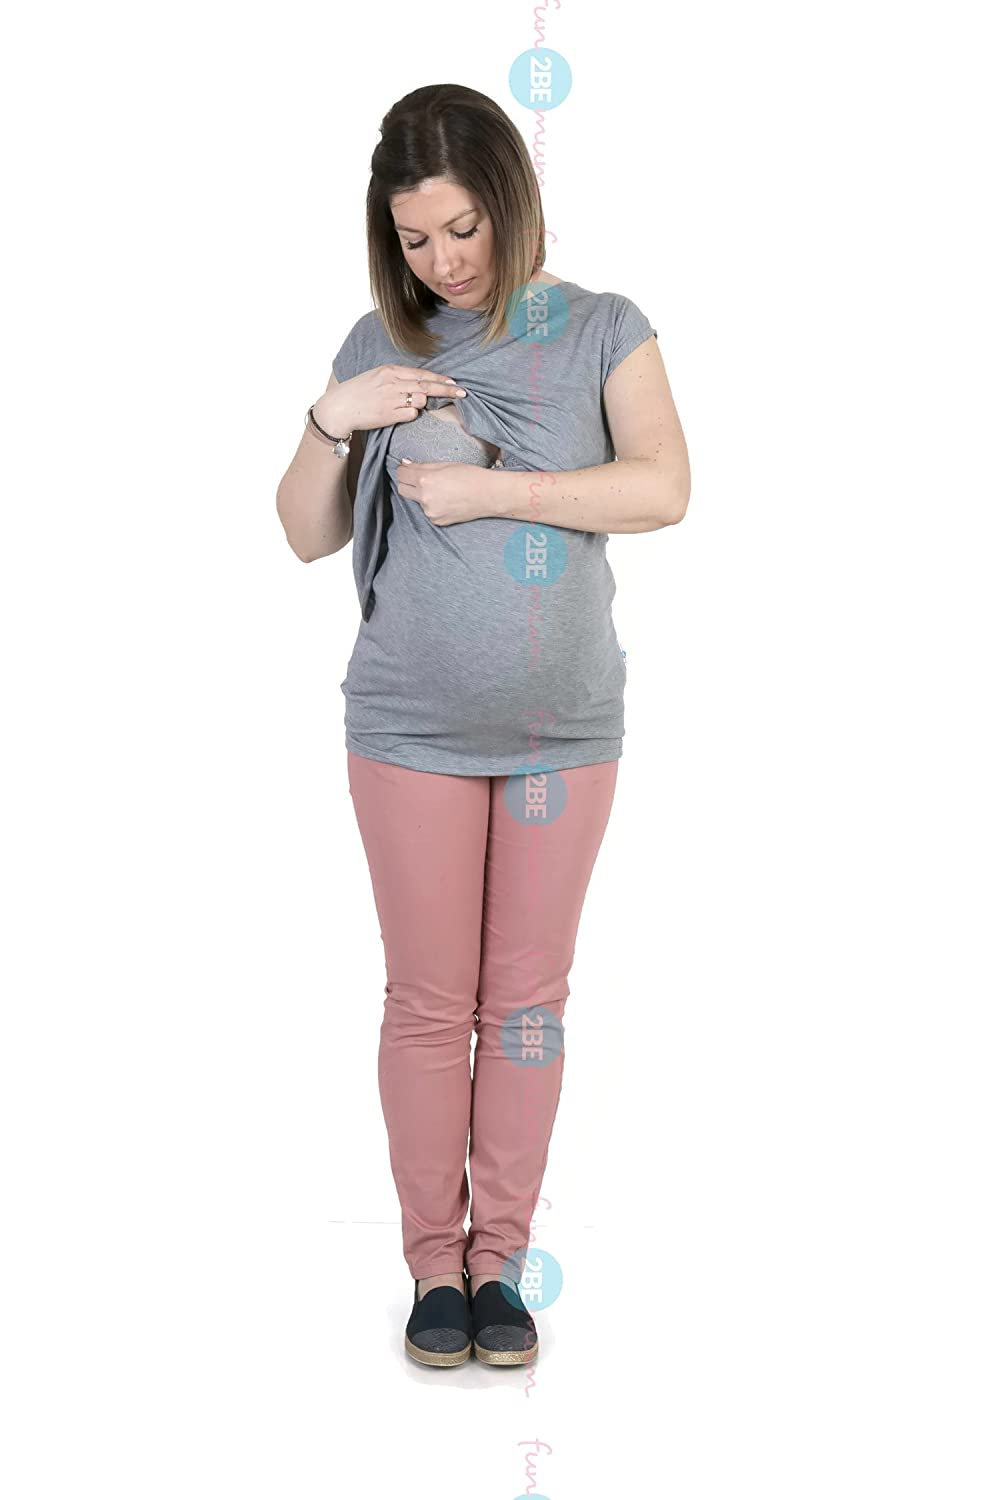 For pregnant ladies bvgg - Fun2bemum 3in1 Maternity Pregnancy Tunic Top Grey At Amazon Women S Clothing Store